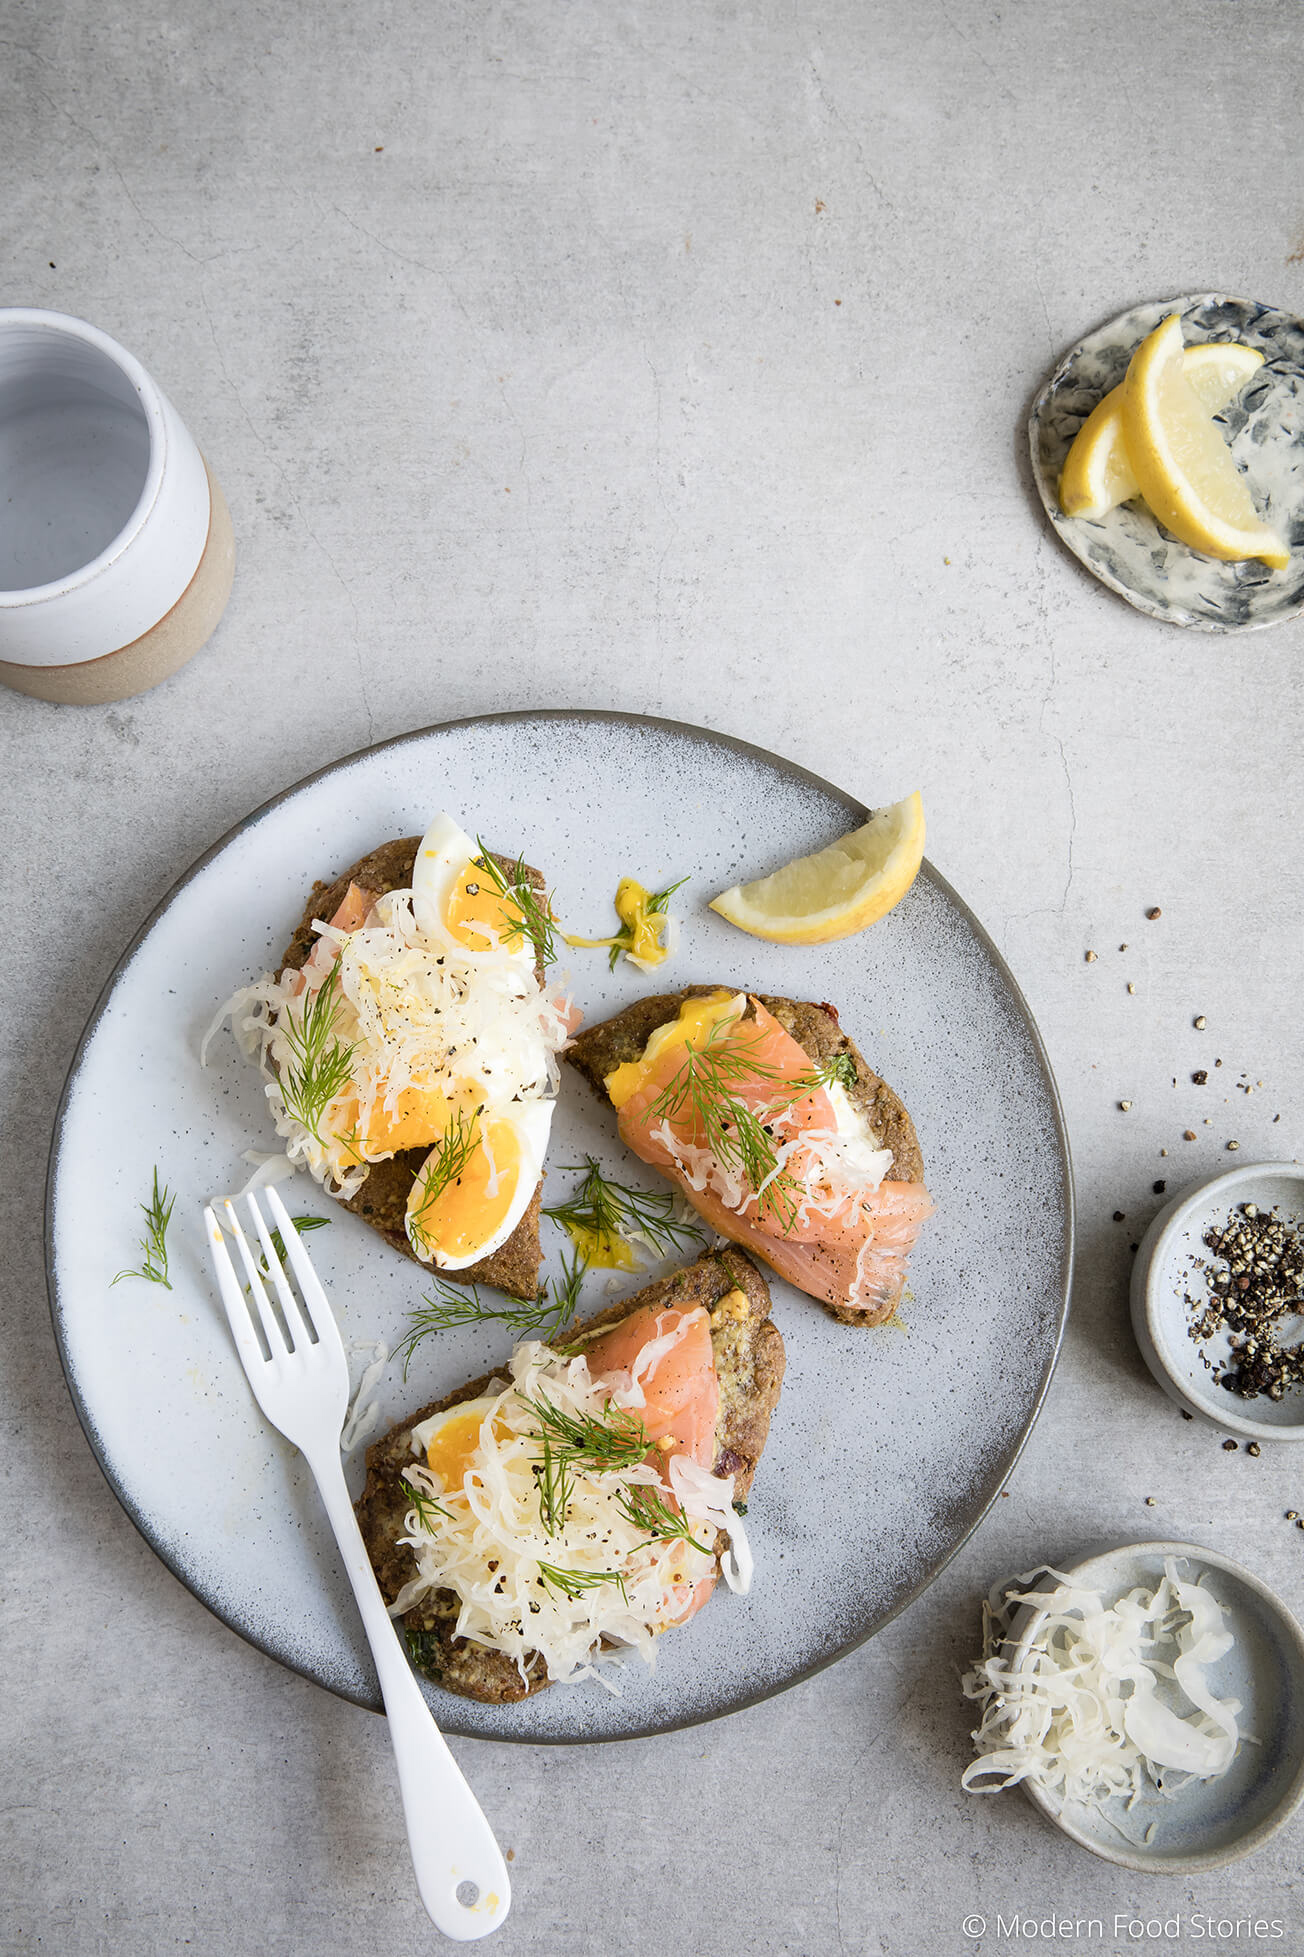 grain free chia breads, food photography, food styling, Modern Food Stories, Paleo Crust, Grain free bread, gluten free bread, Paleo breakfast, keto breakfast, low carb breakfast recipes, smoked salmon recipes, grain free bread recipe